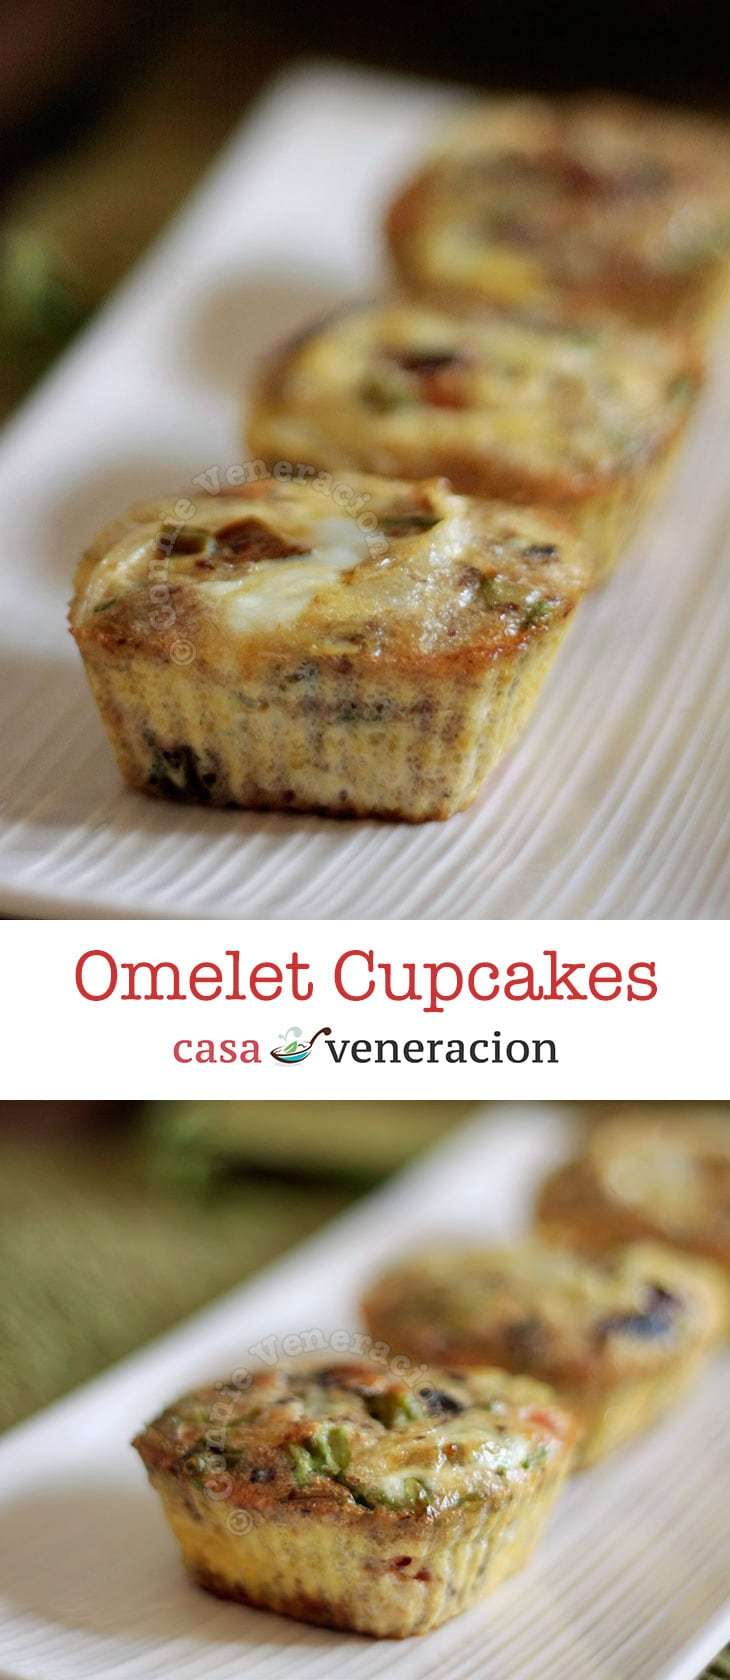 Omelet cupcakes are mini-omelets baked in muffin pans. Not for eye candy but to make them more portable and more convenient to handle. | casaveneracion.com